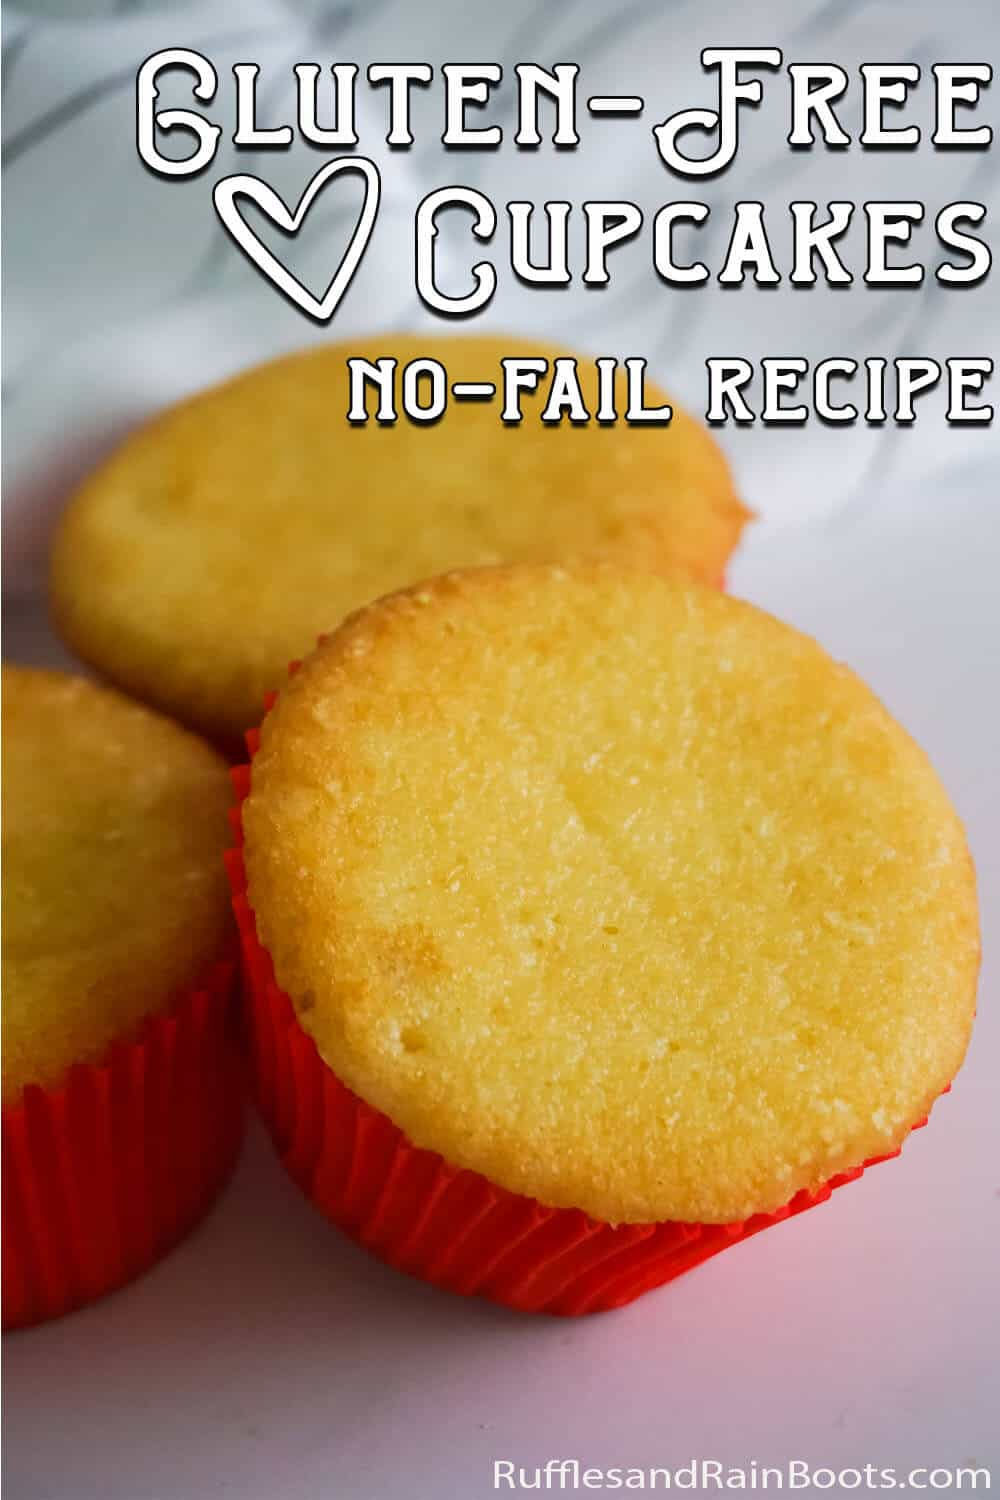 simple gluten-free cupcake recipe with text which reads gluten-free cupcakes no-fail recipe